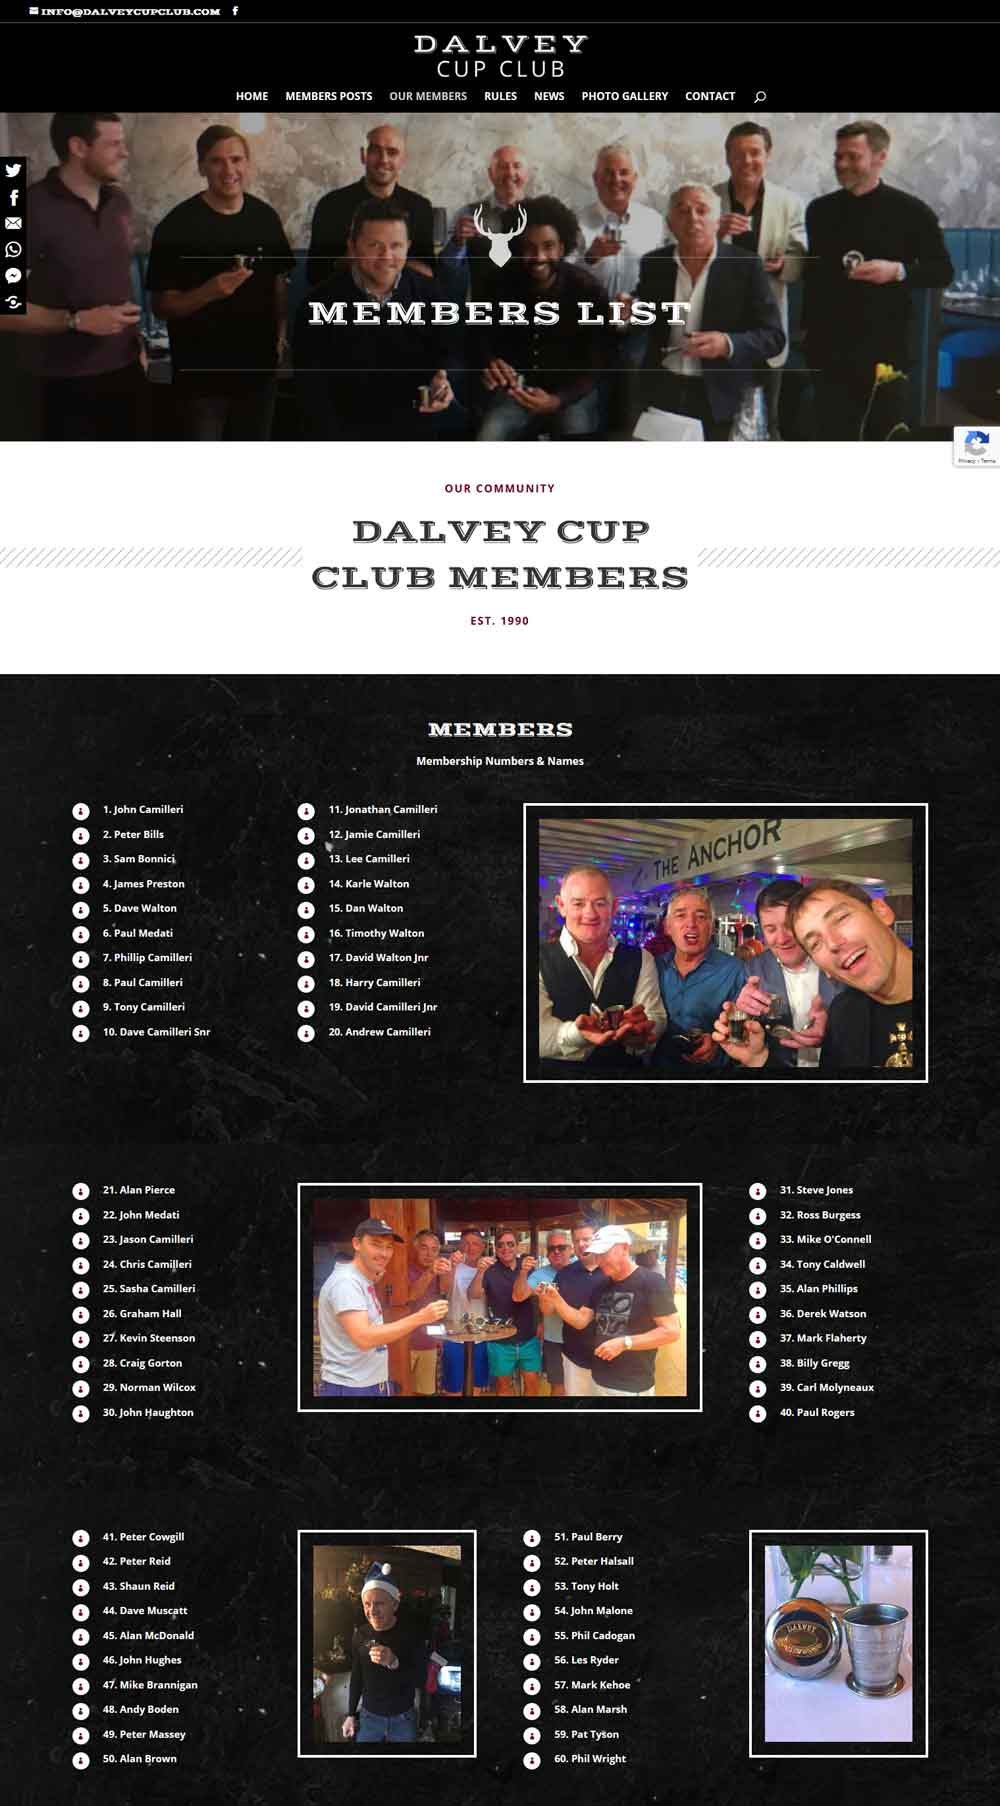 A section of the List of Dalvey Cup Club Members